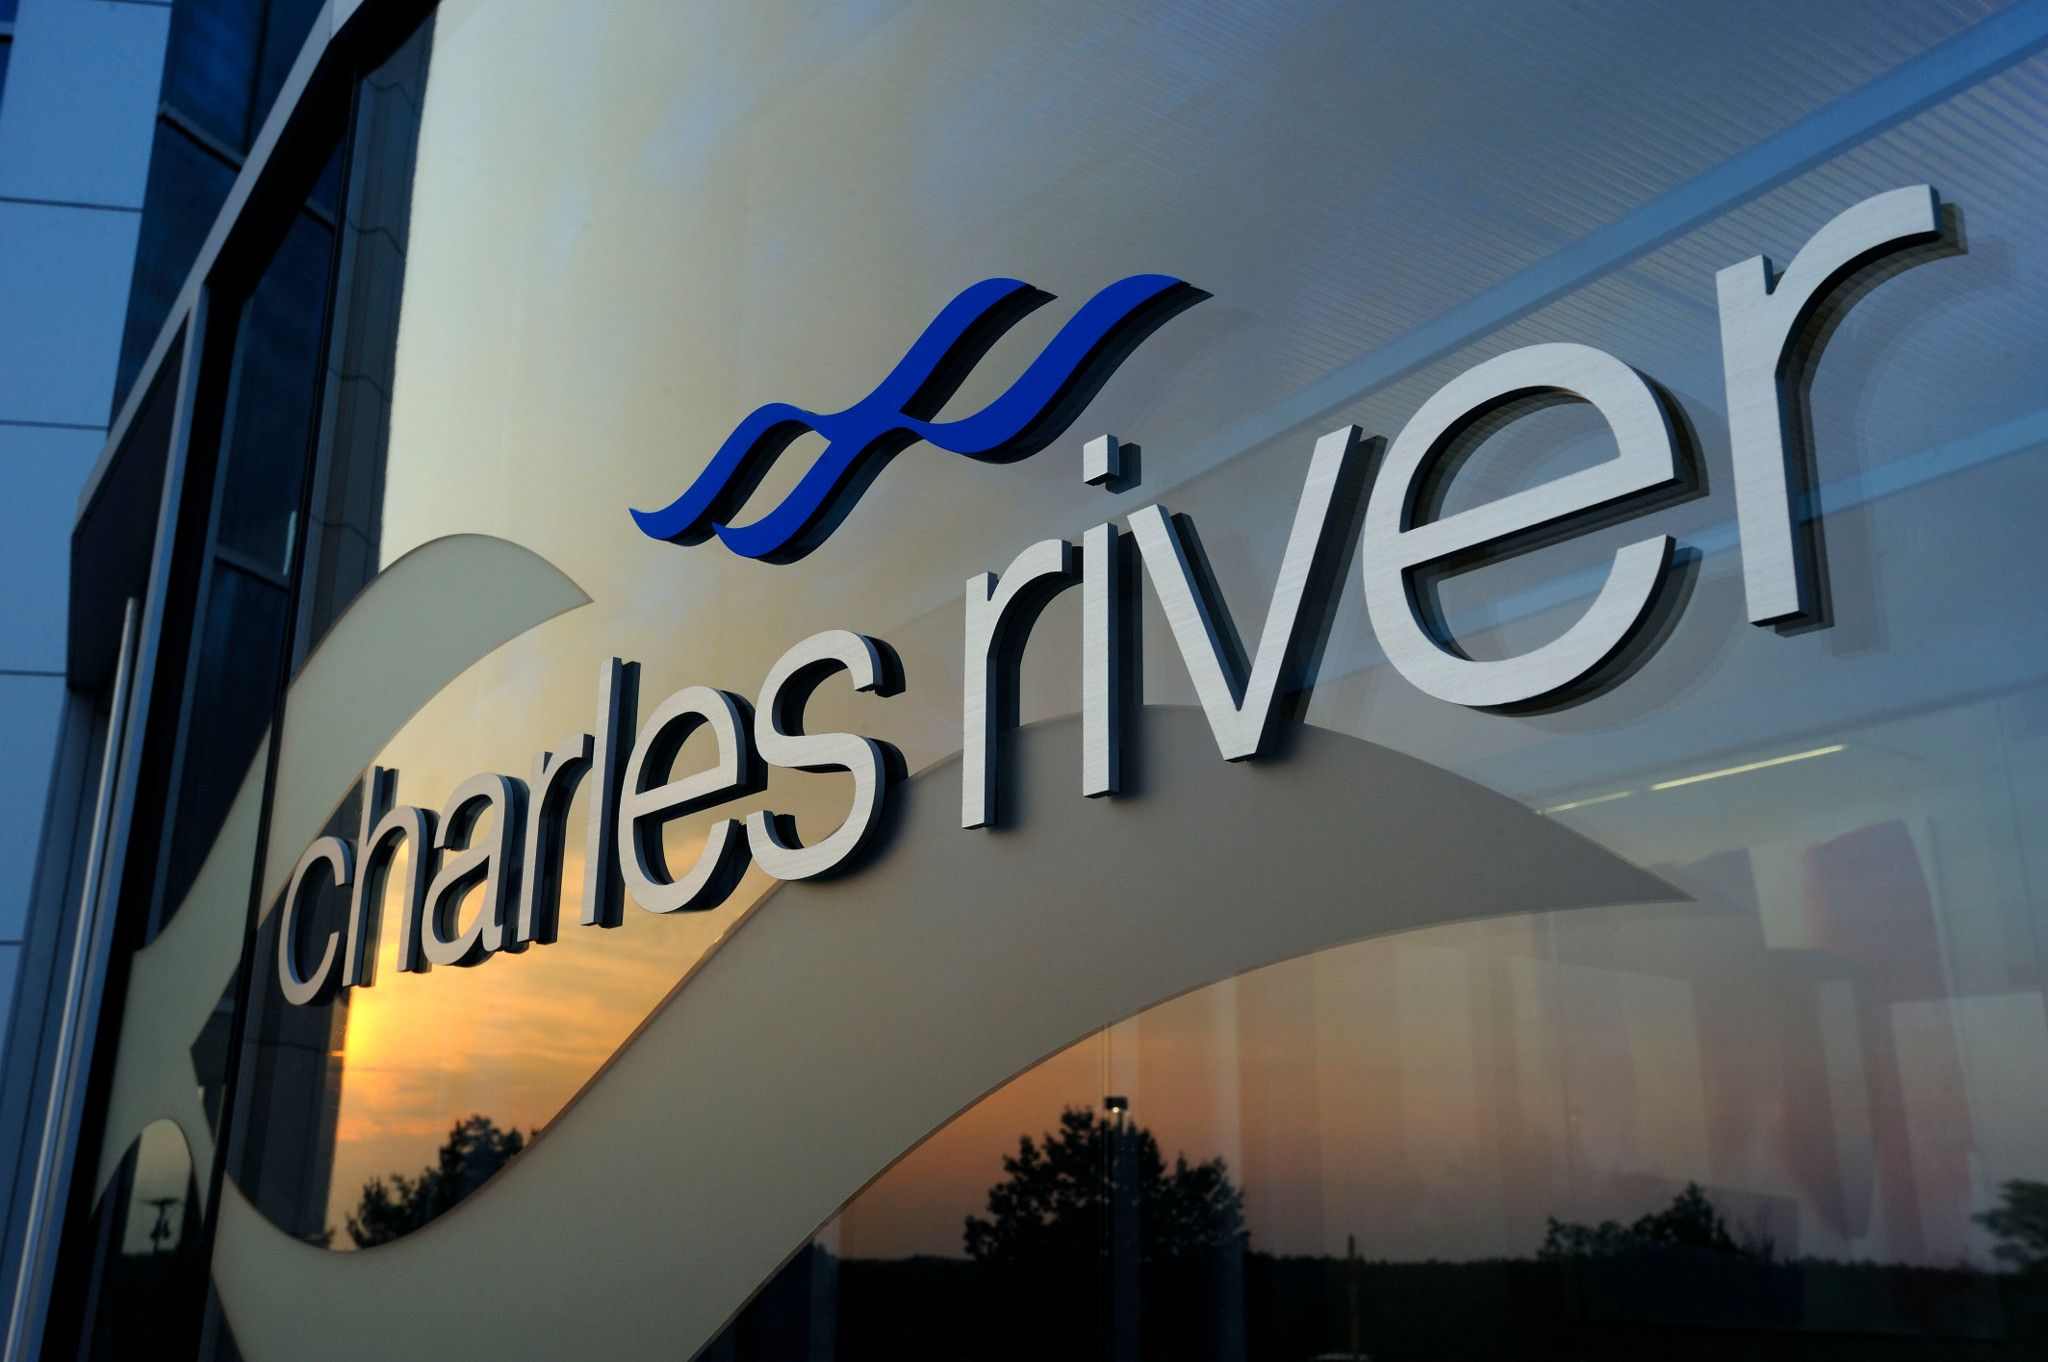 Exterior view of Charles River corporate headquarters